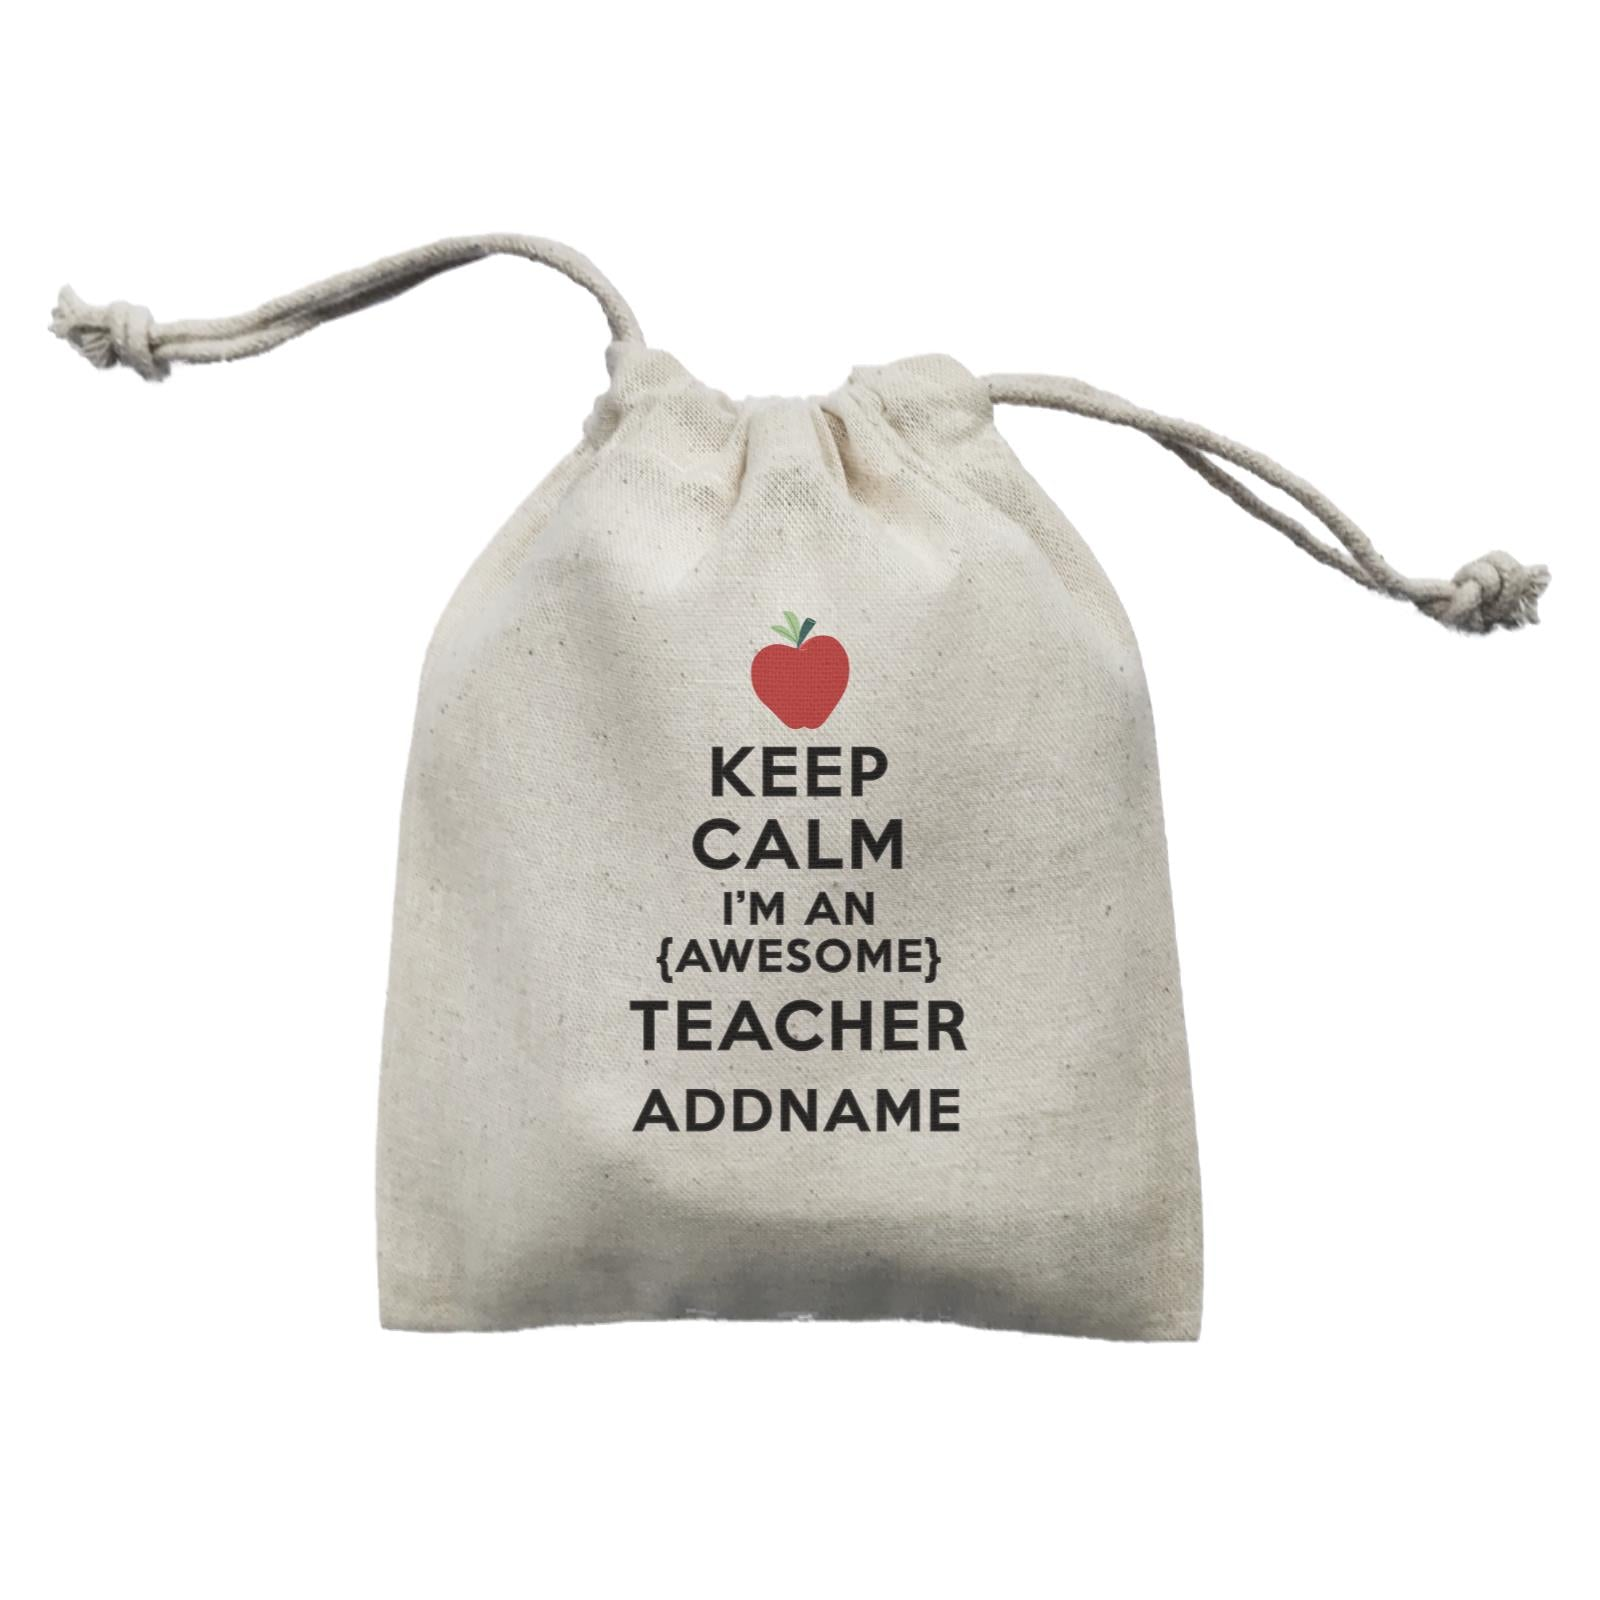 Teacher Quotes Keep Calm I'm An Awesome Teacher Addname Mini Accessories Mini Pouch